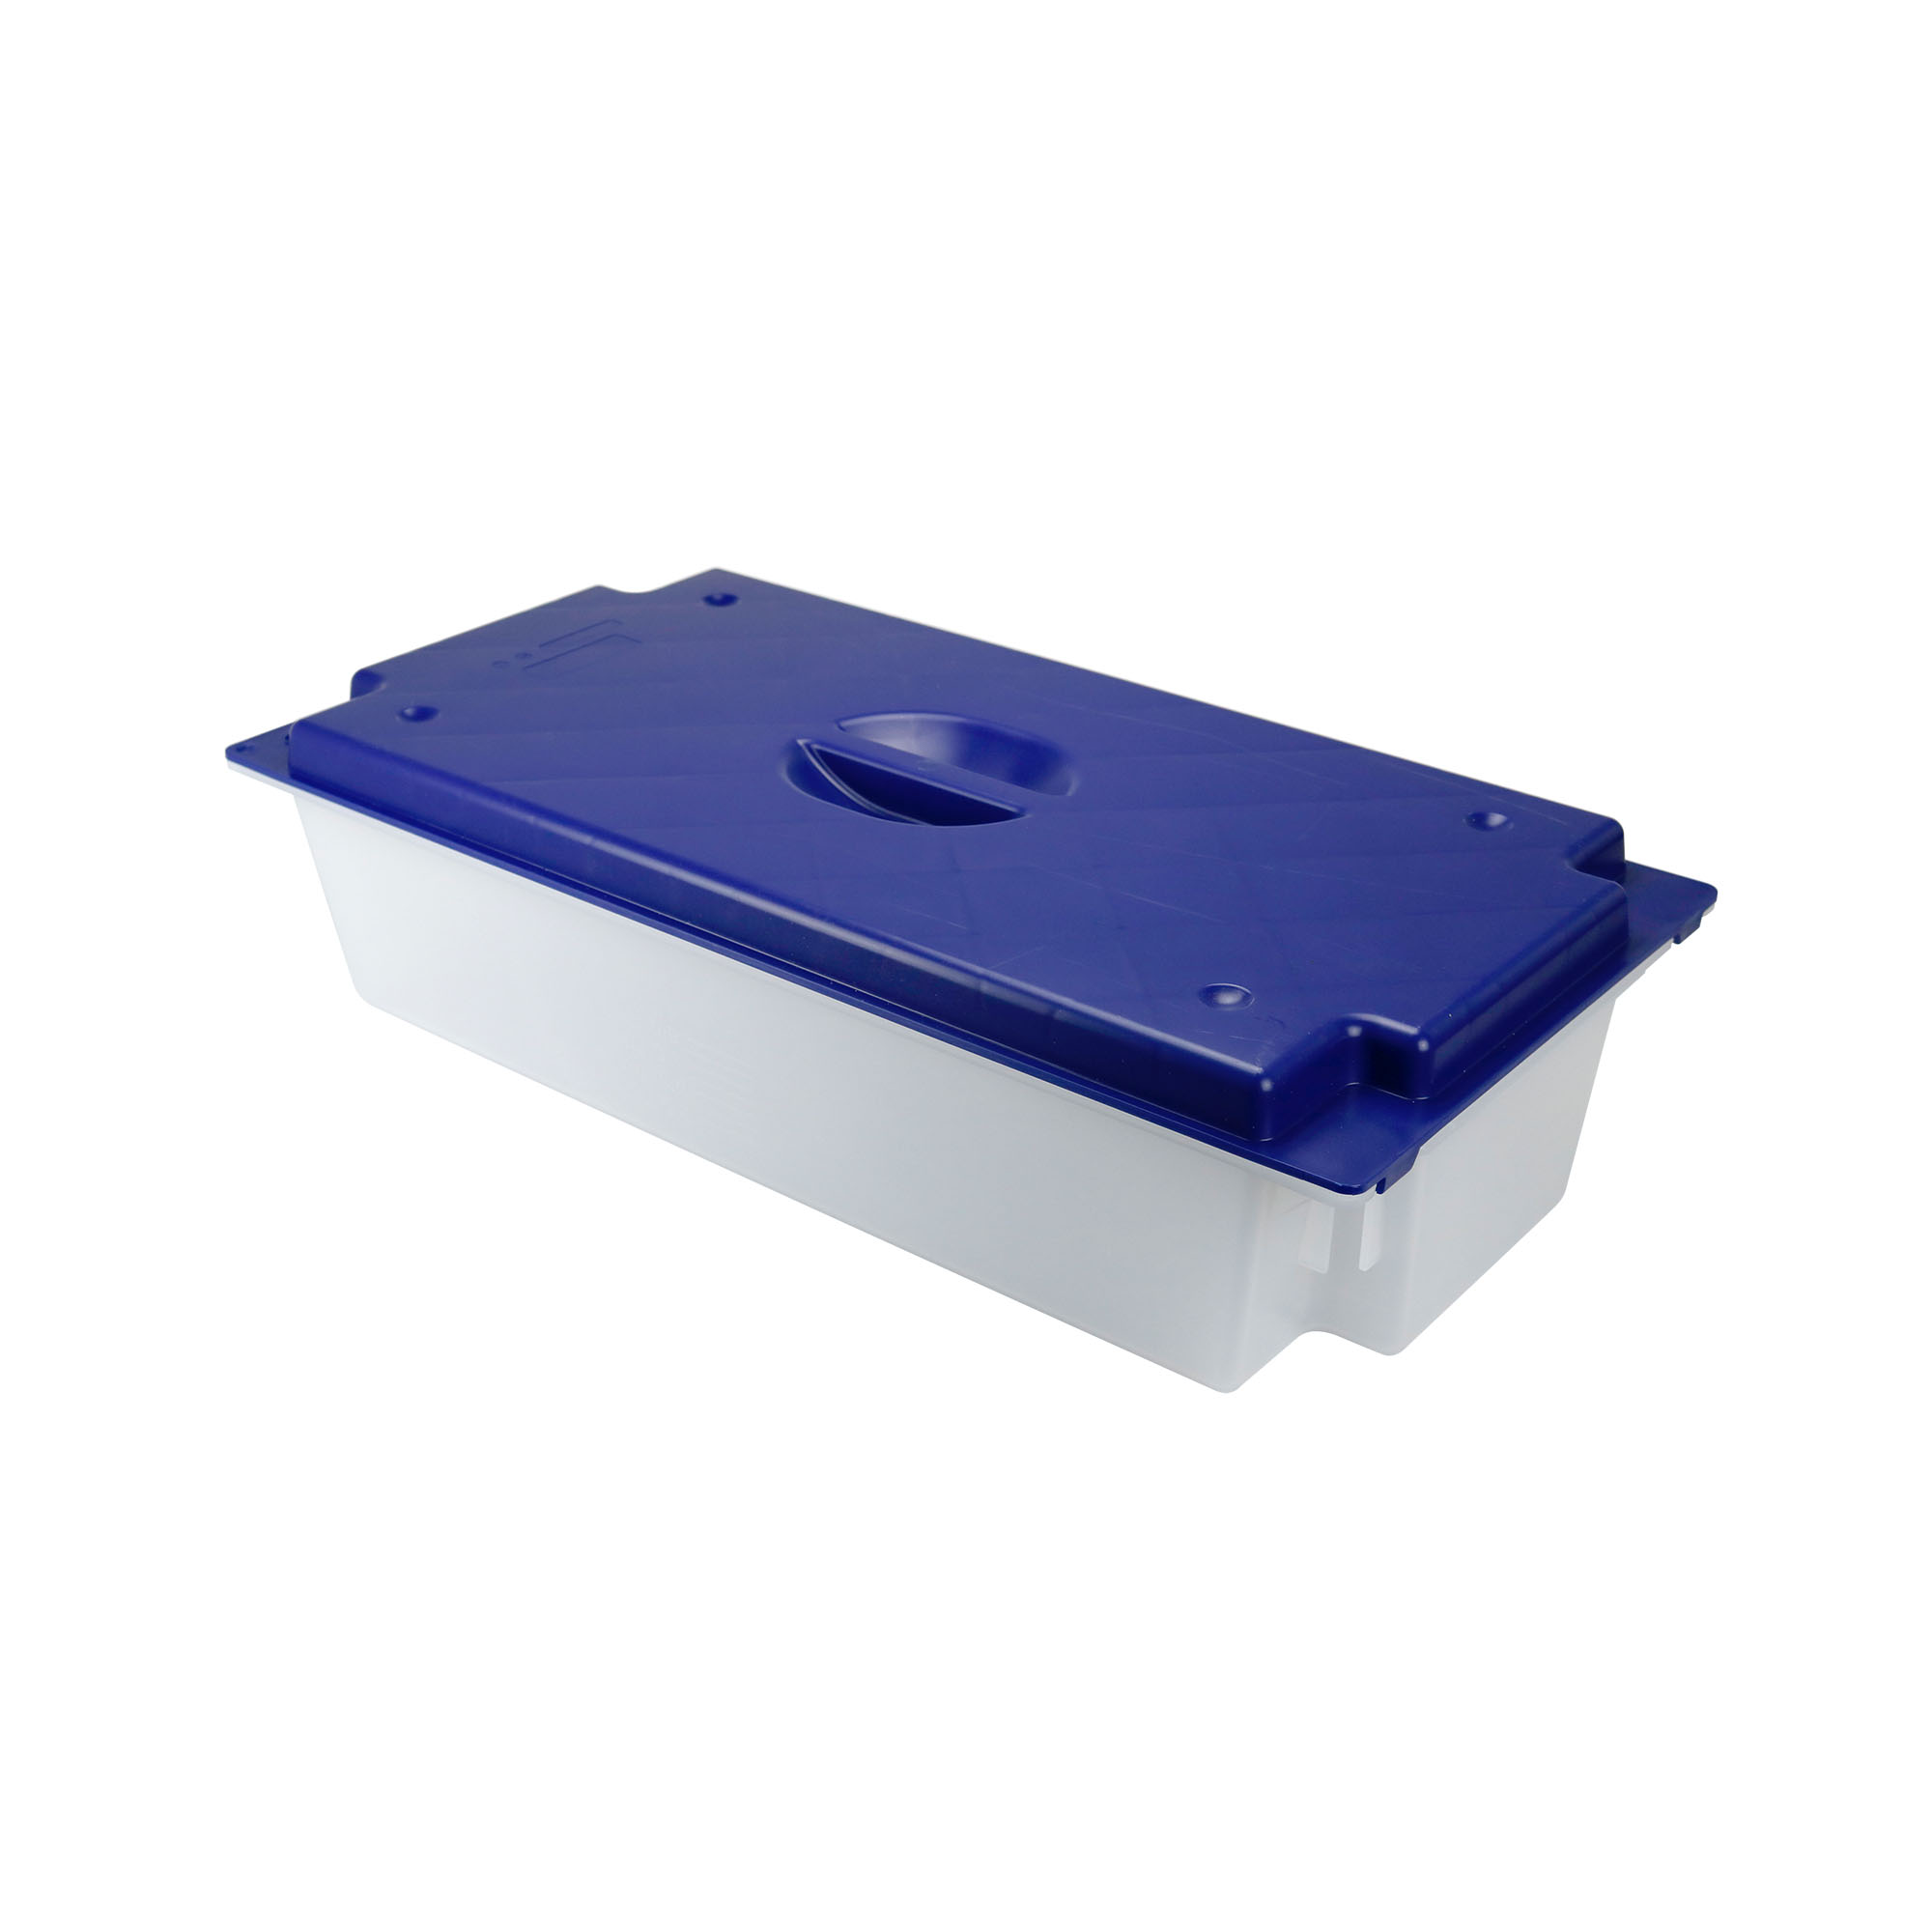 Lid for Disinfection container Image